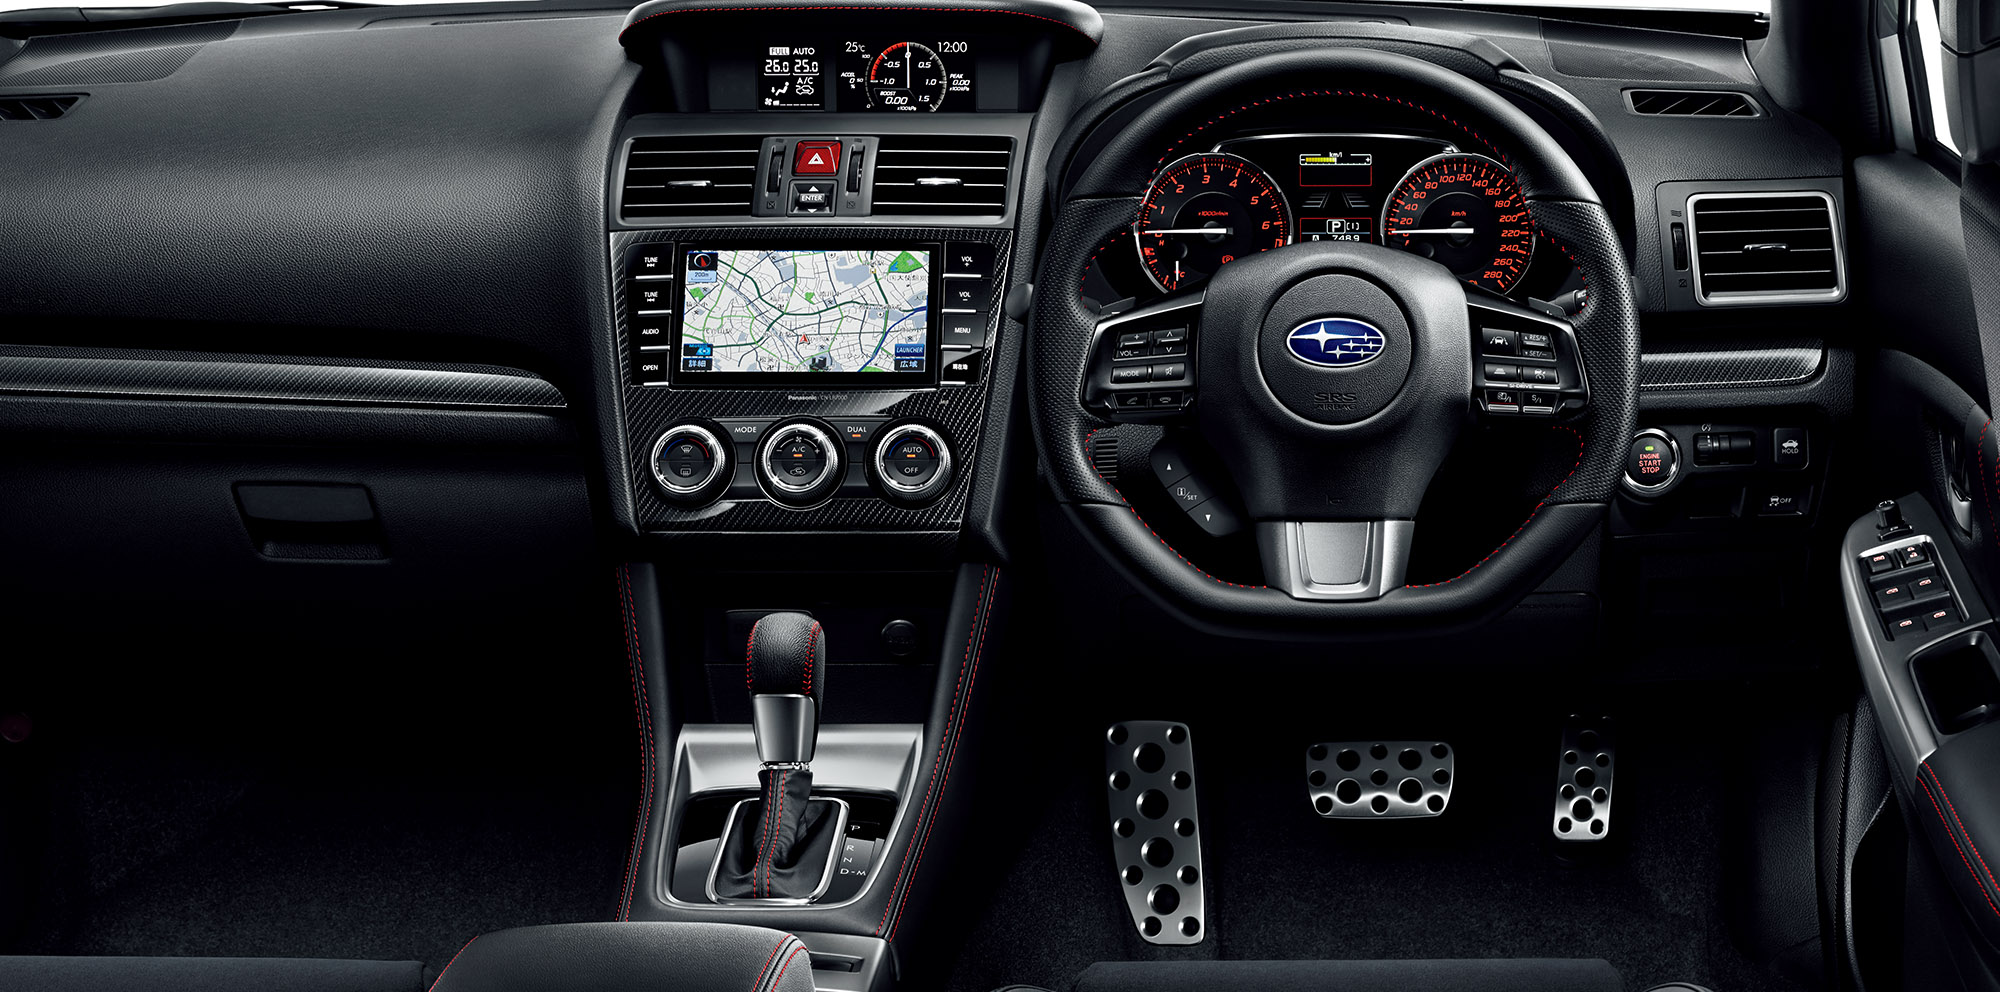 Subaru WRX S4 launched in Japan with 221kW/400Nm engine | CarAdvice